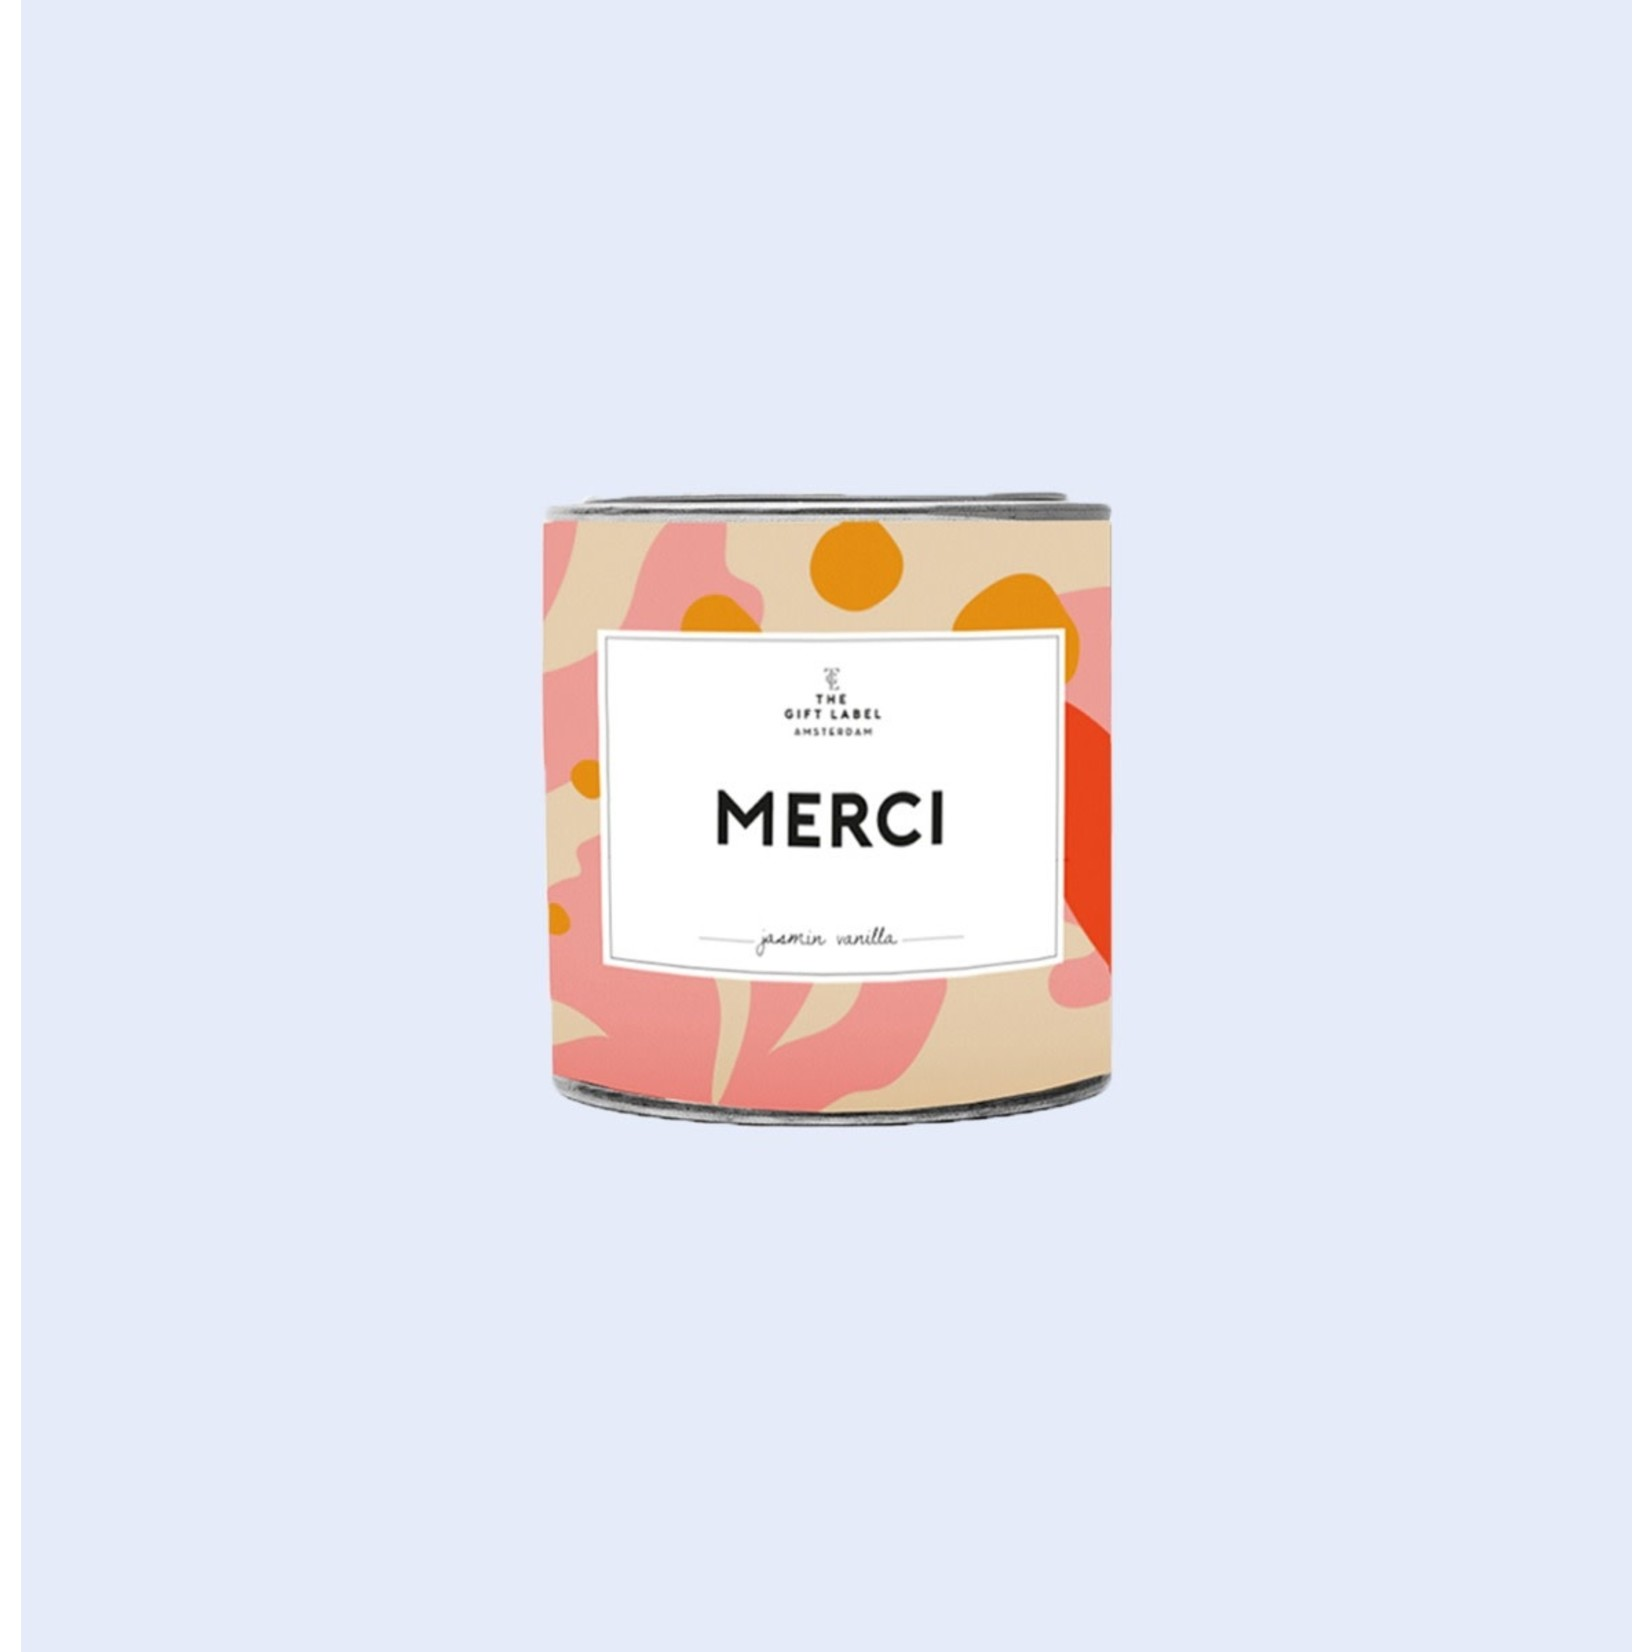 The Gift Label The Gift Label | Tin Candle 90g | Merci